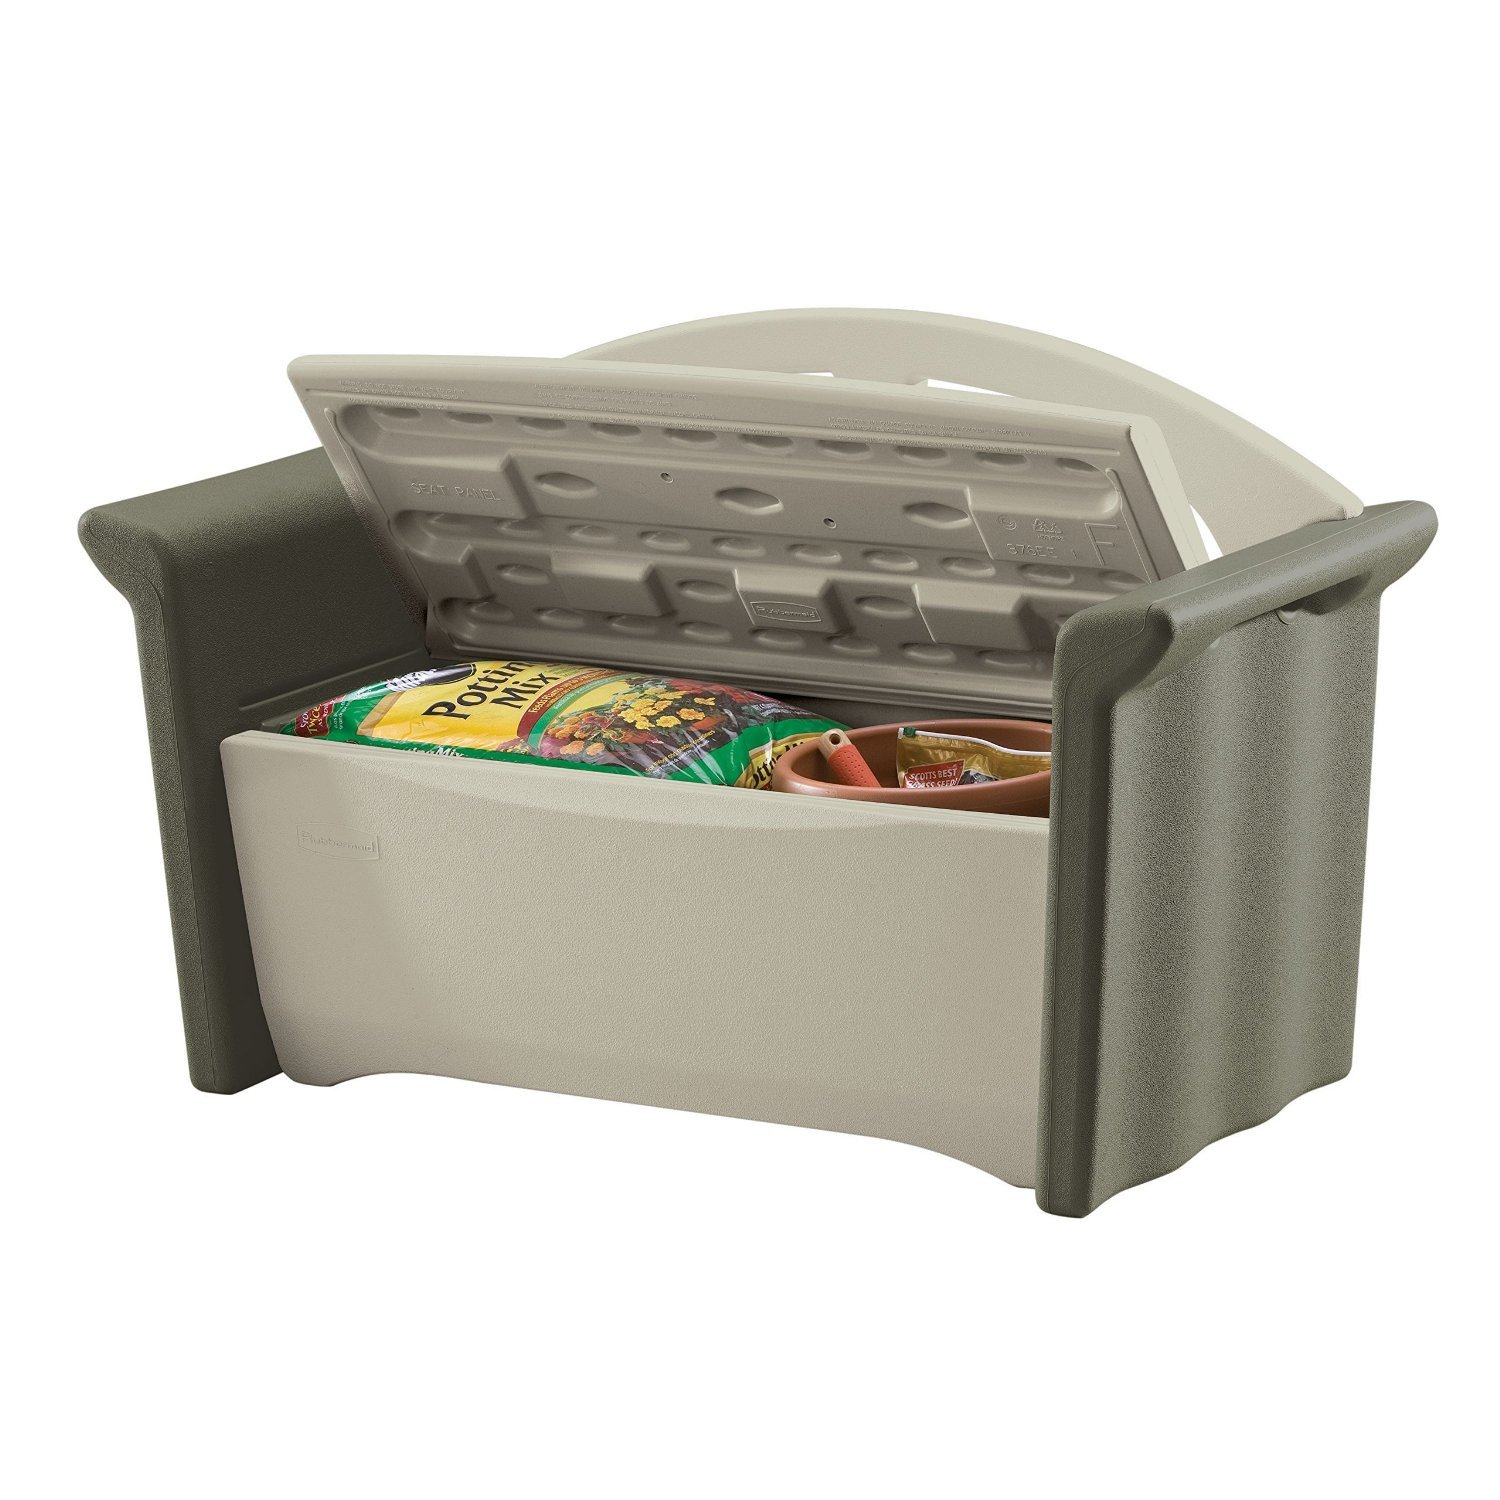 Amazon.com : Rubbermaid Outdoor Patio Storage Bench, 4 cu. ft.,  Olive/Sandstone (FG376401OLVSS) : Deck Boxes : Garden & Outdoor - Amazon.com : Rubbermaid Outdoor Patio Storage Bench, 4 Cu. Ft